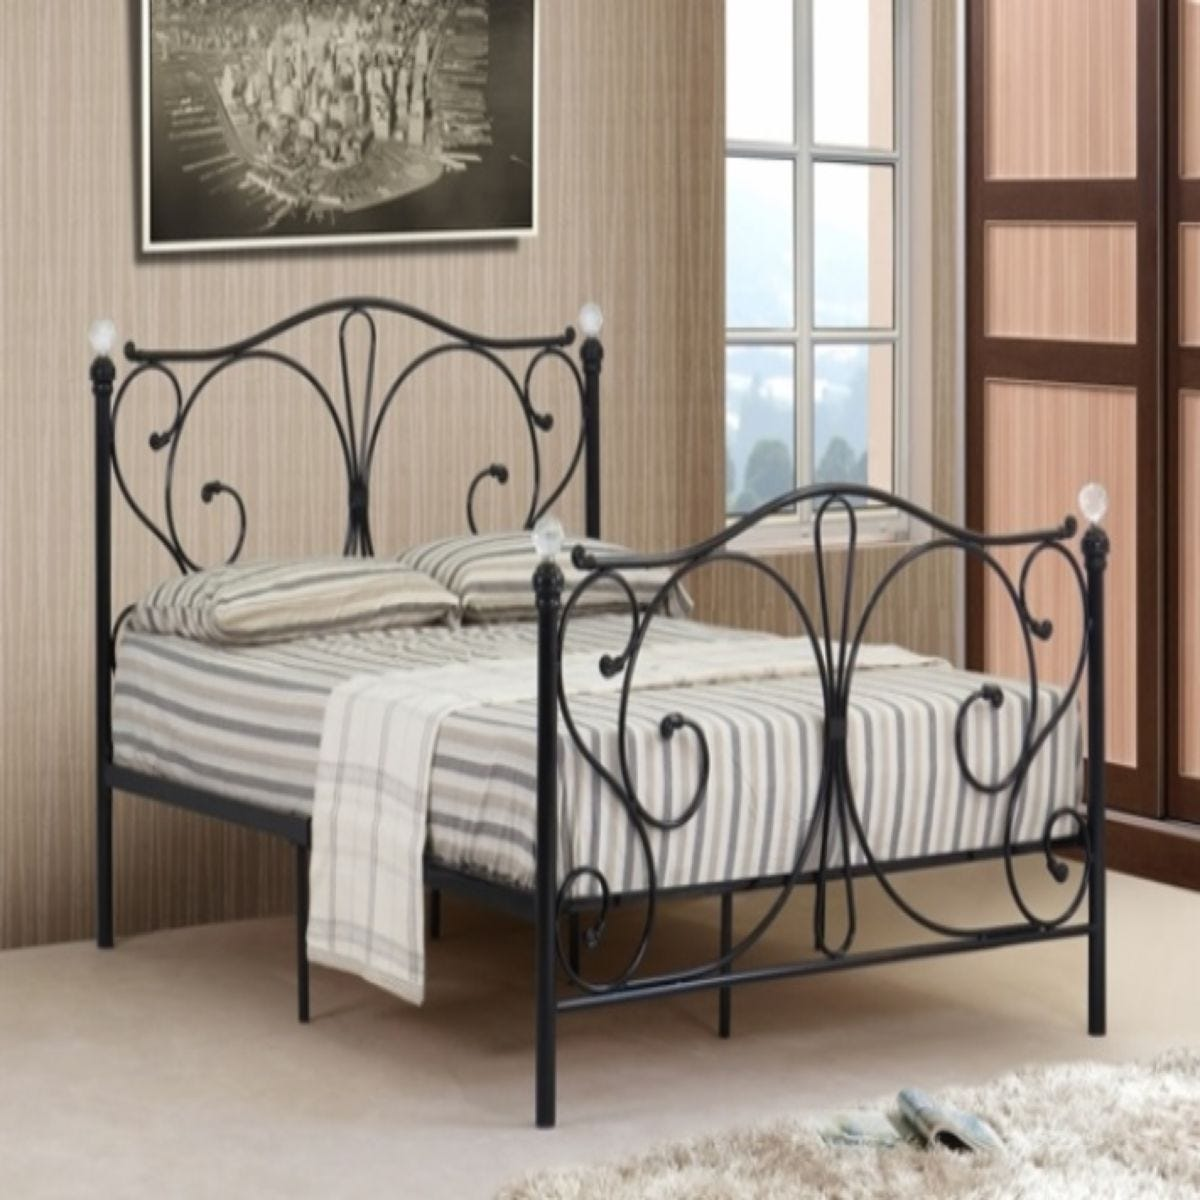 Isabelle Metal Double Bed Frame With Crystal Finials - Black